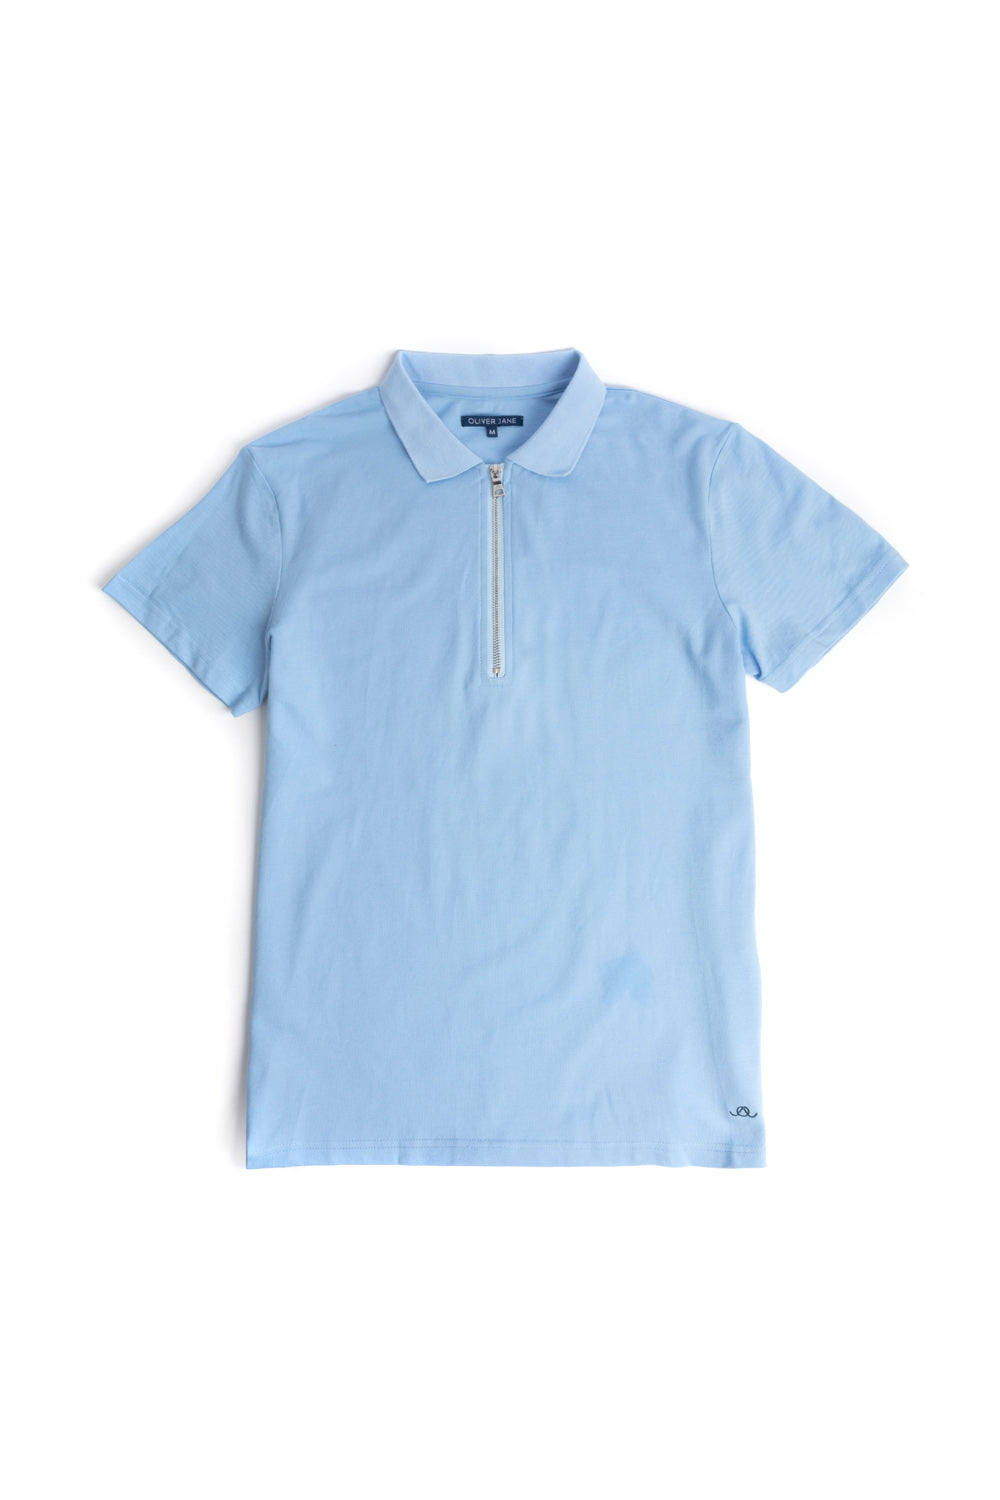 The Light Blue Miami Polo Classic Fit